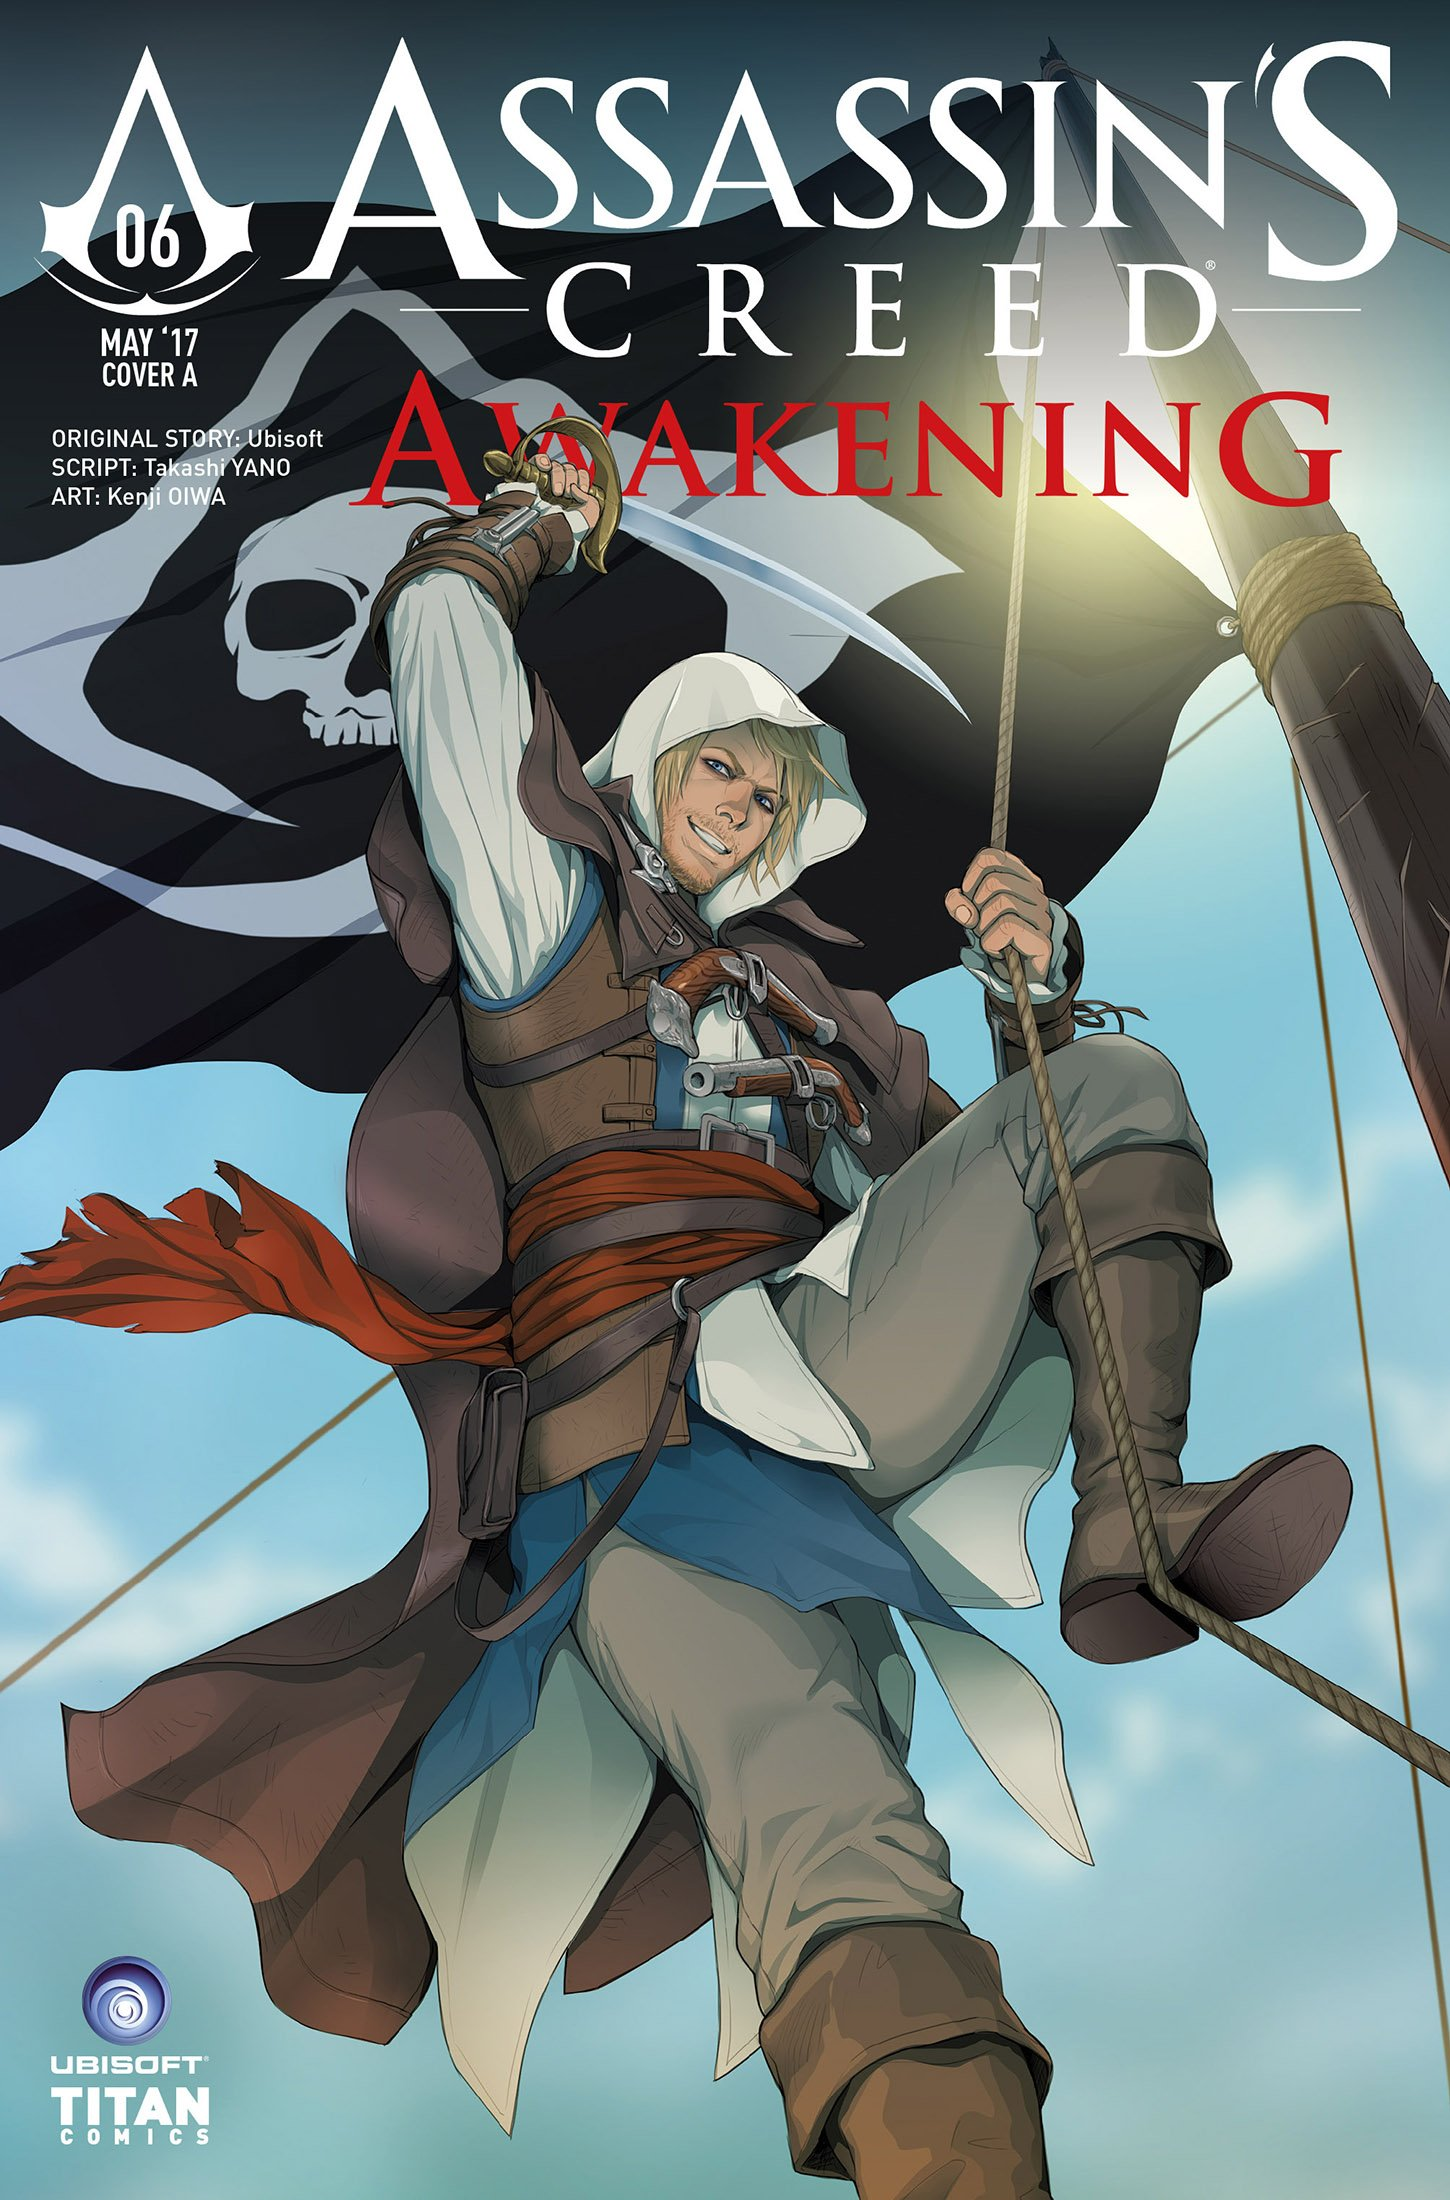 Assassin's Creed - Awakening 06 (May 2017) (cover a)